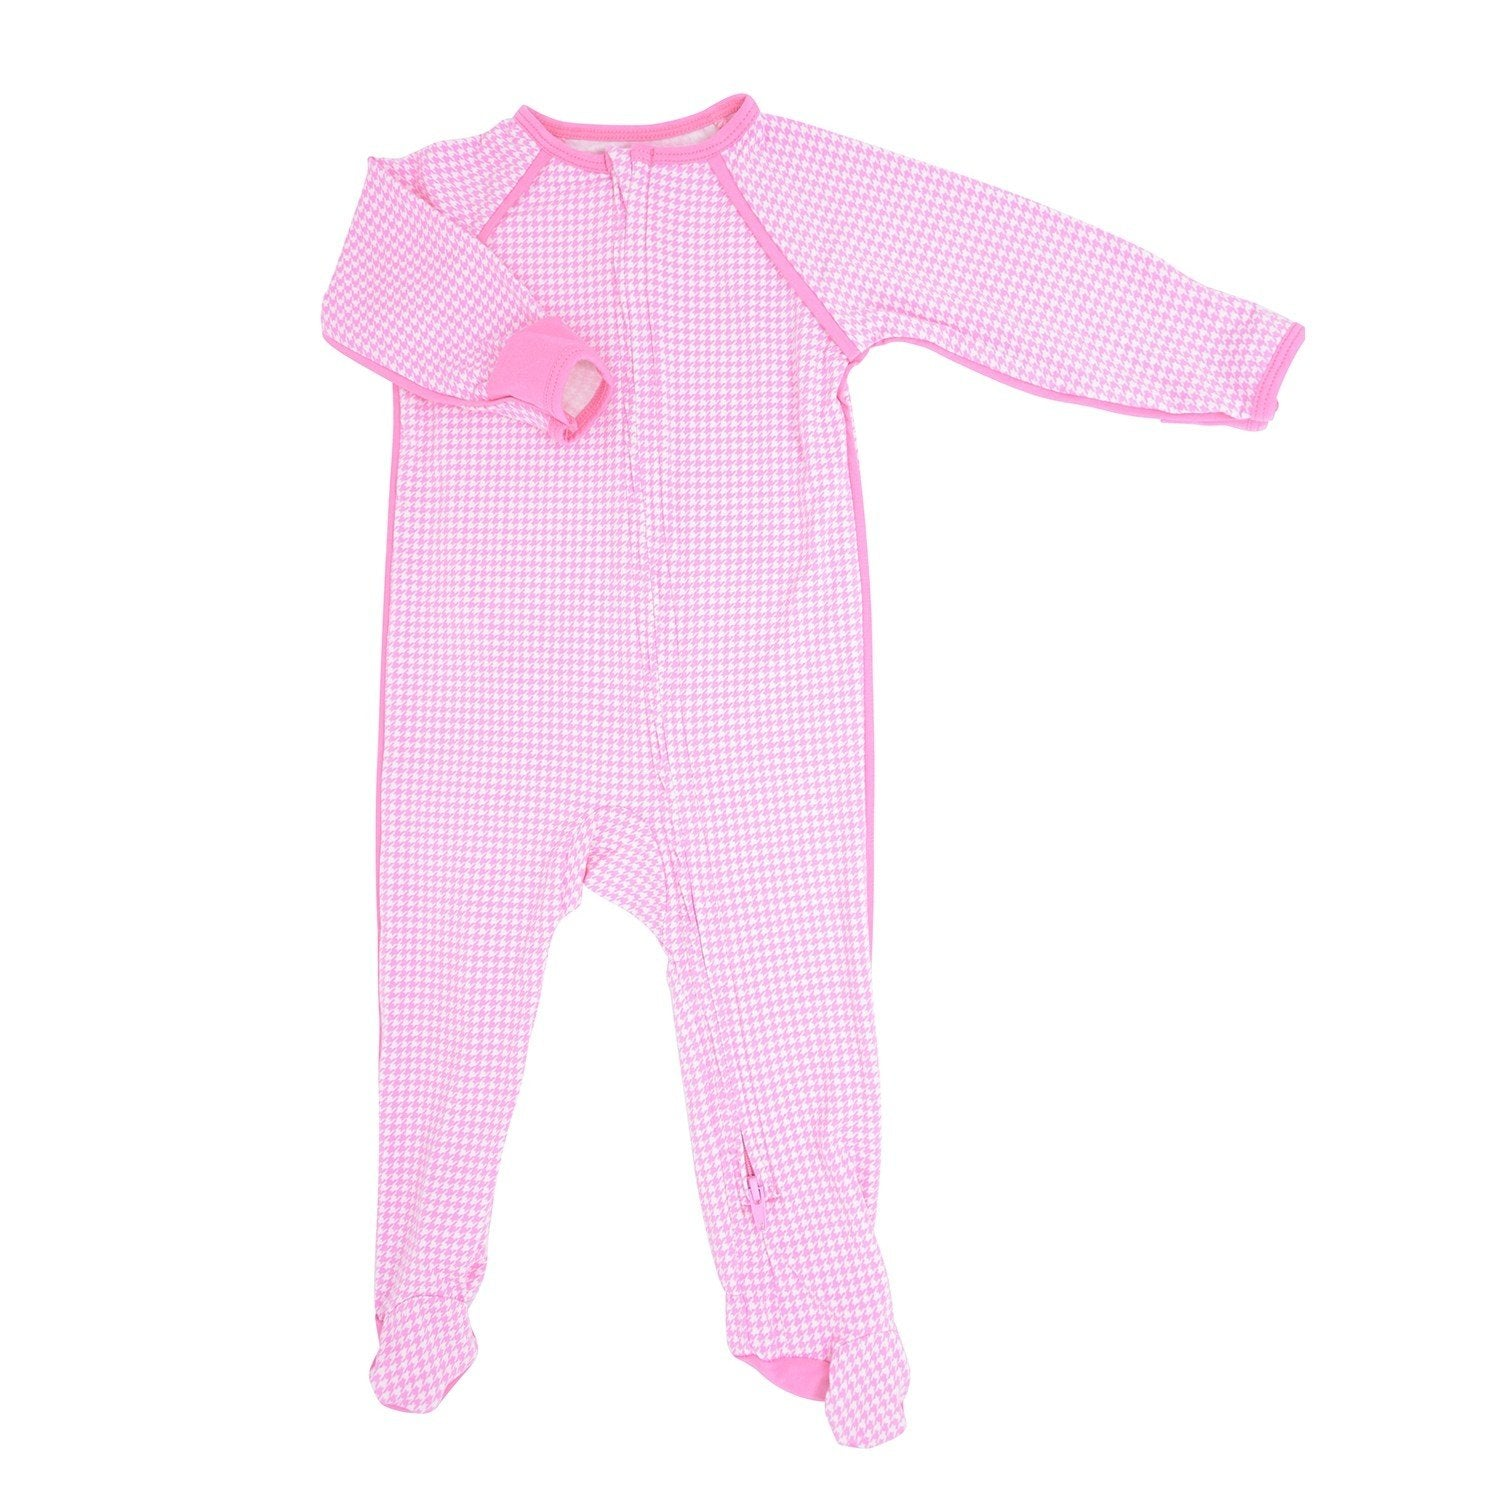 Piped Zipper Footie - Pink Houndstooth - Sweet Bamboo